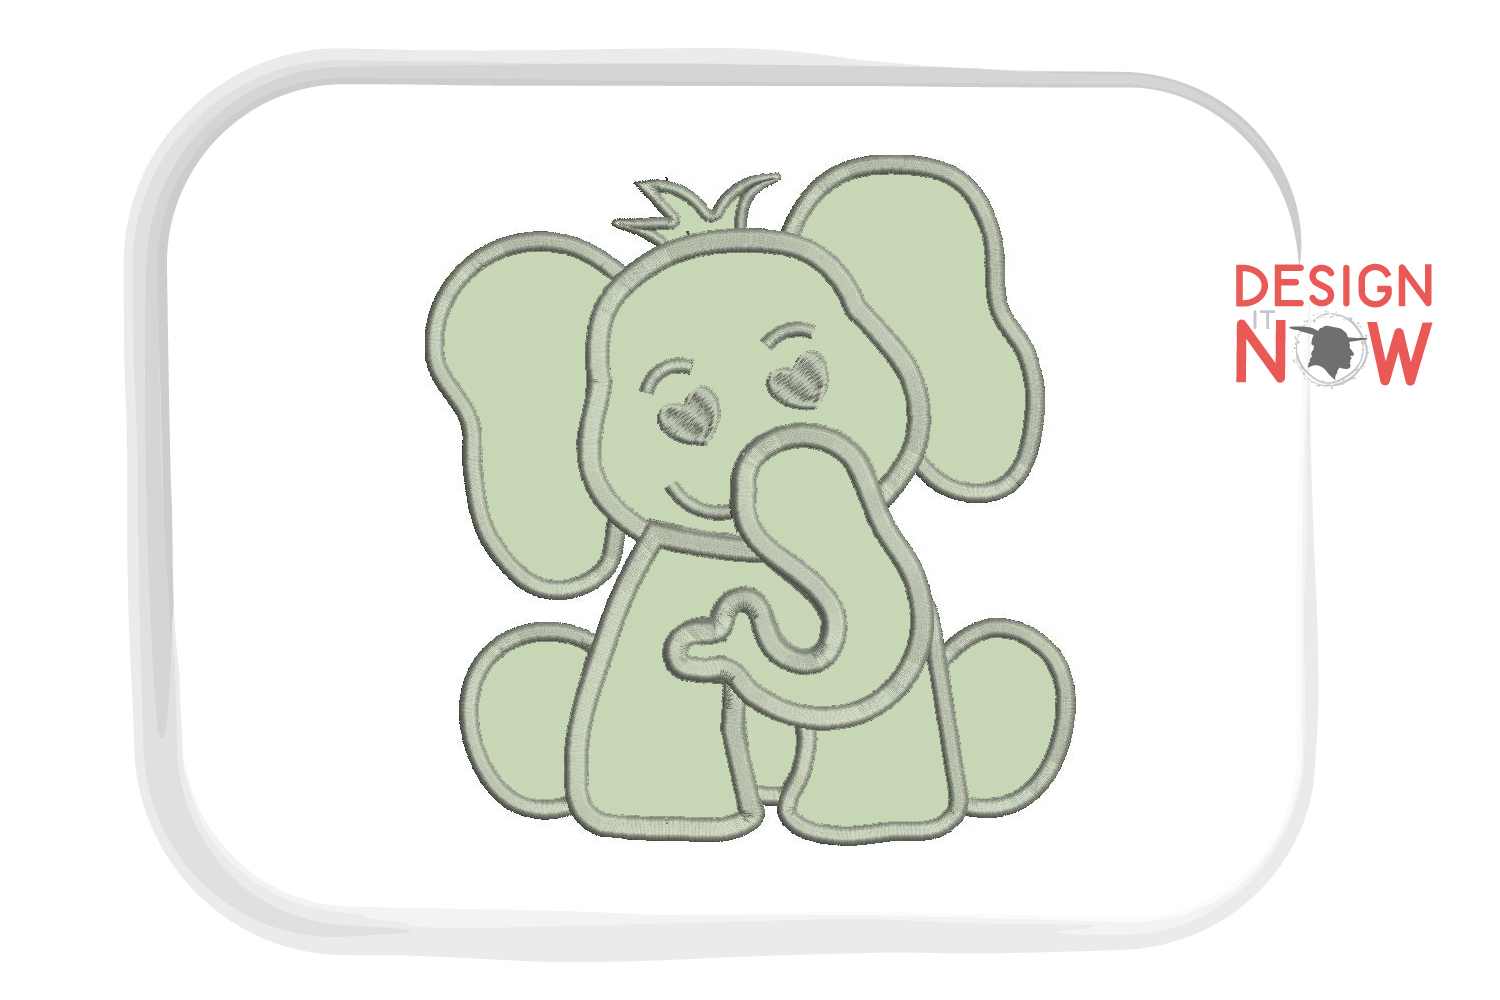 Elephant Applique Embroidery Design, Elephant Embroidery example image 2